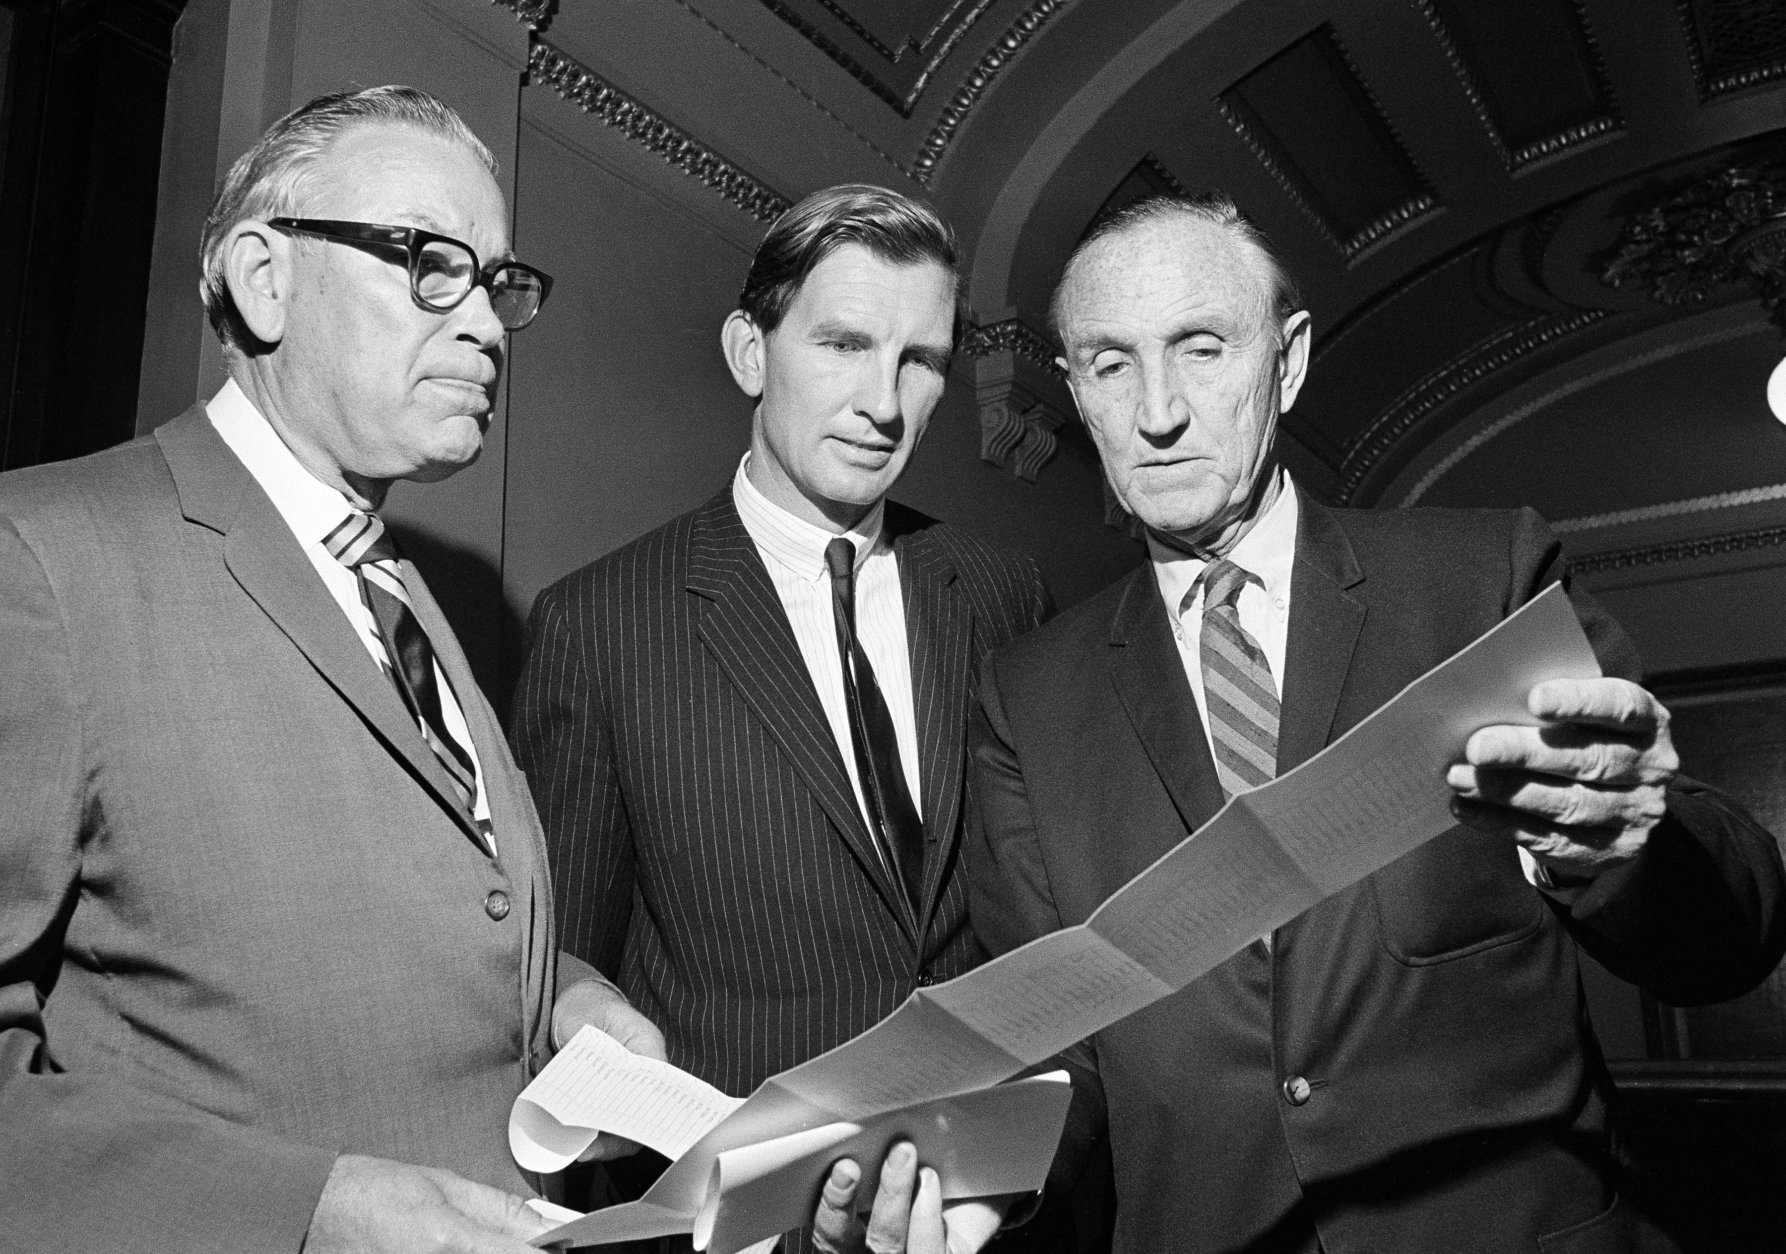 The Senate passed the controversial crime control bill for D.C. over protests by opponents that parts of it trample on Constitutional rights, July 23, 1970, in Washington. From left: Sen. Roman L. Hruska (R-Neb.), Sen. Joseph D. Tydings (D-Md.) and Sen. Mike Mansfield (D-Mont.), checking the voting results. (AP Photo)